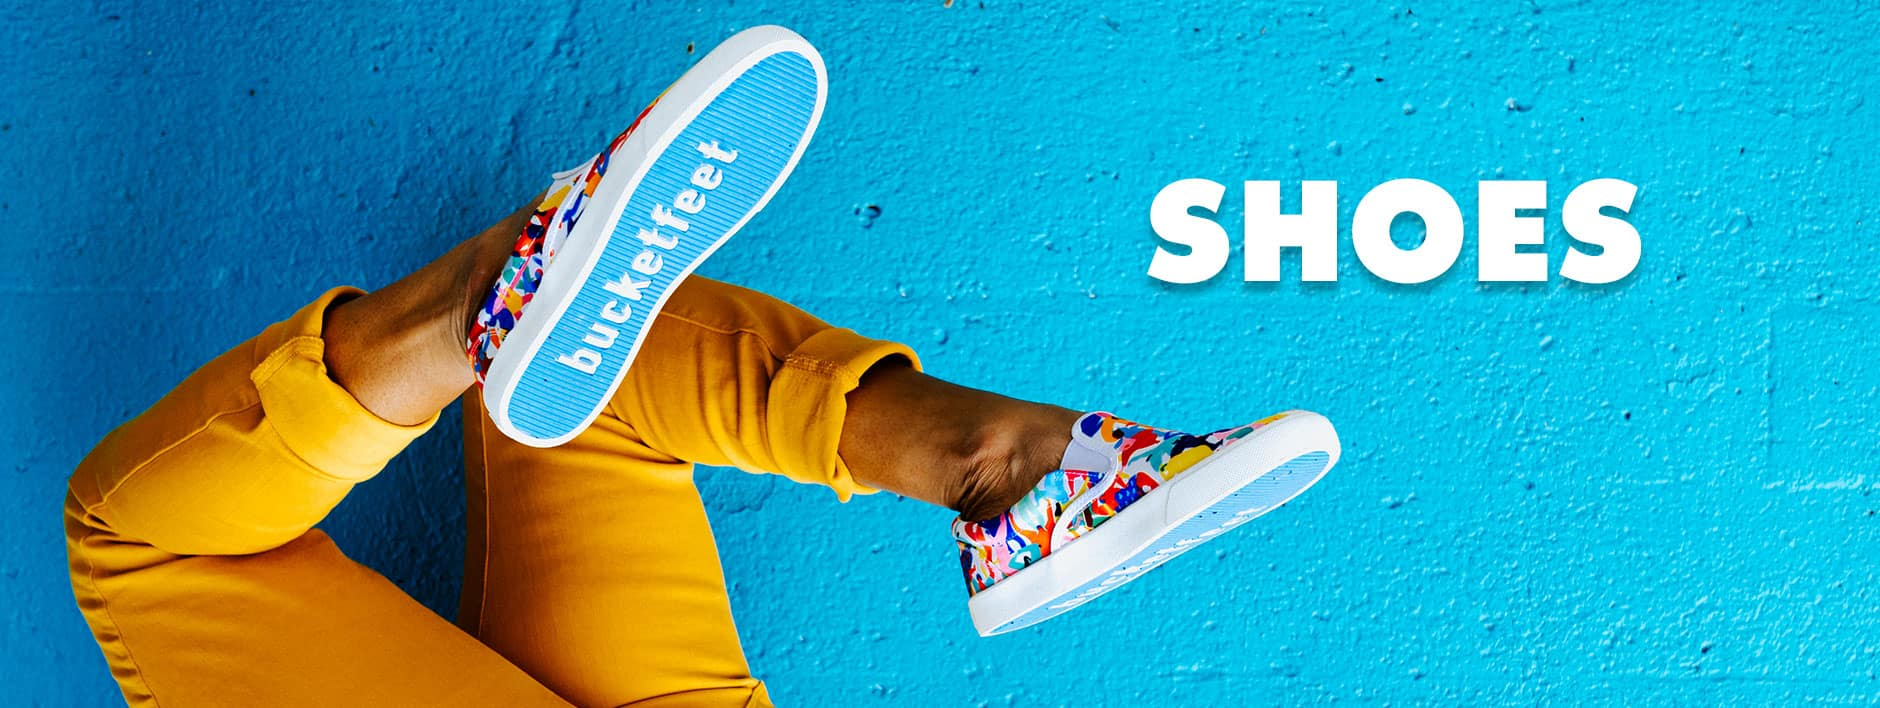 Shop Women's Bucketfeet shoes